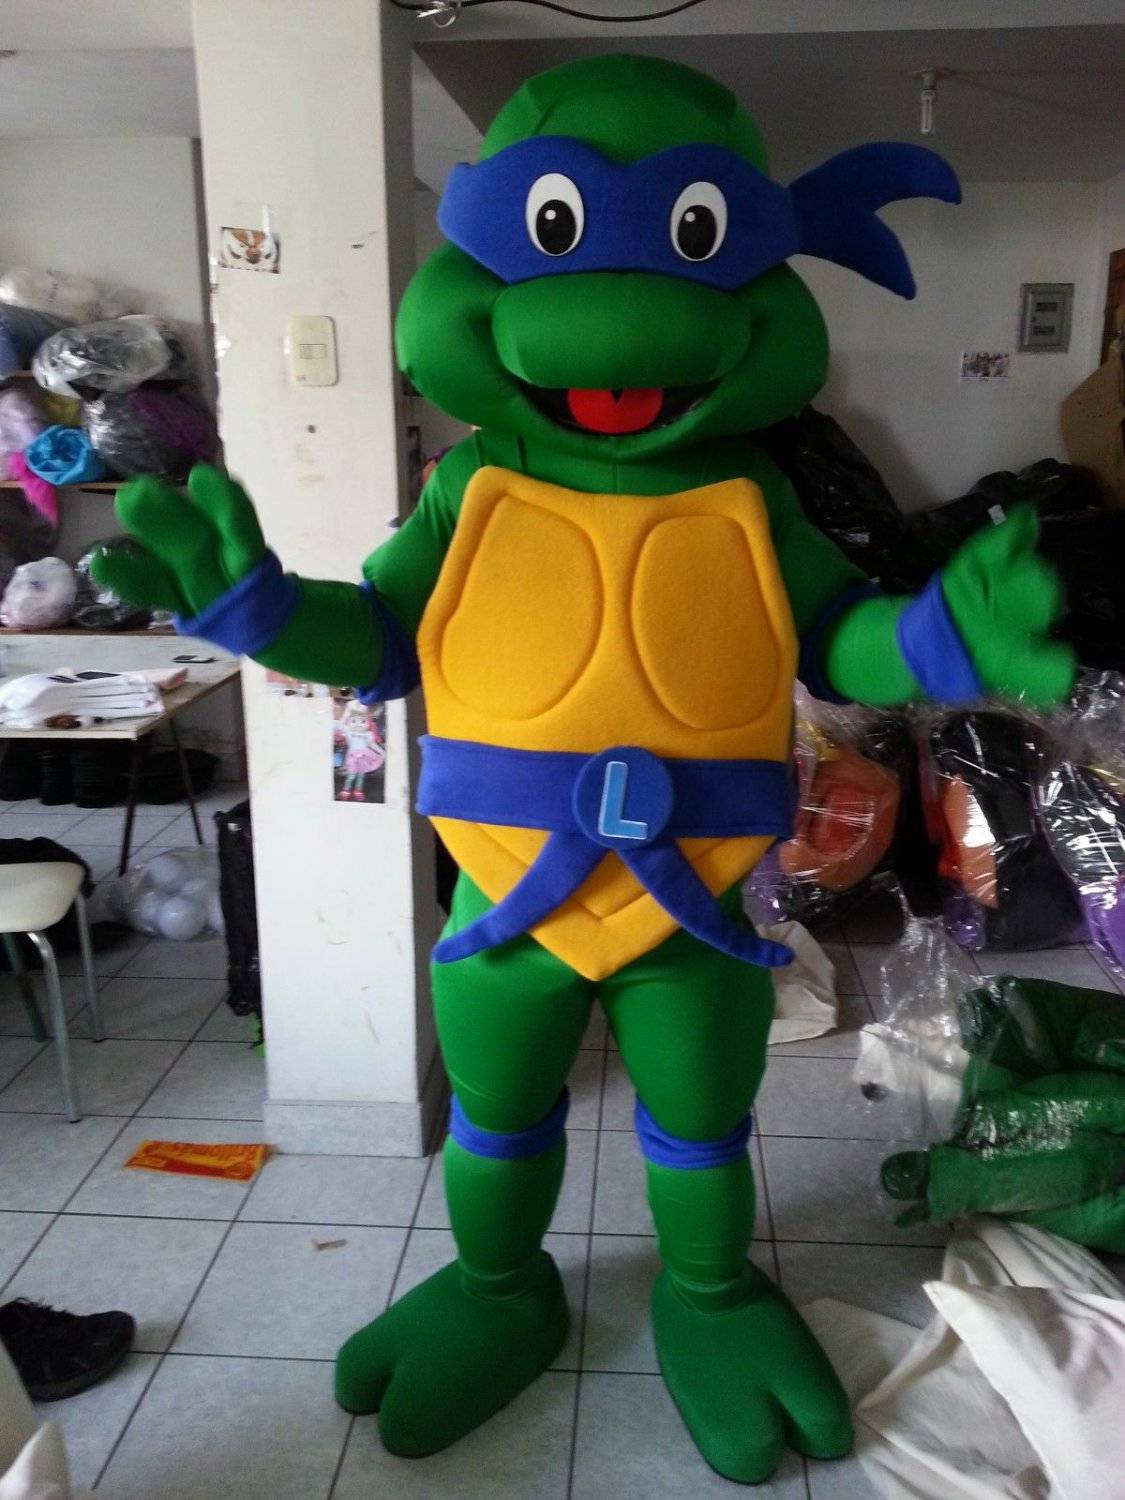 Free Shipping Ninja Turtle Mascot Costume for Halloween and party